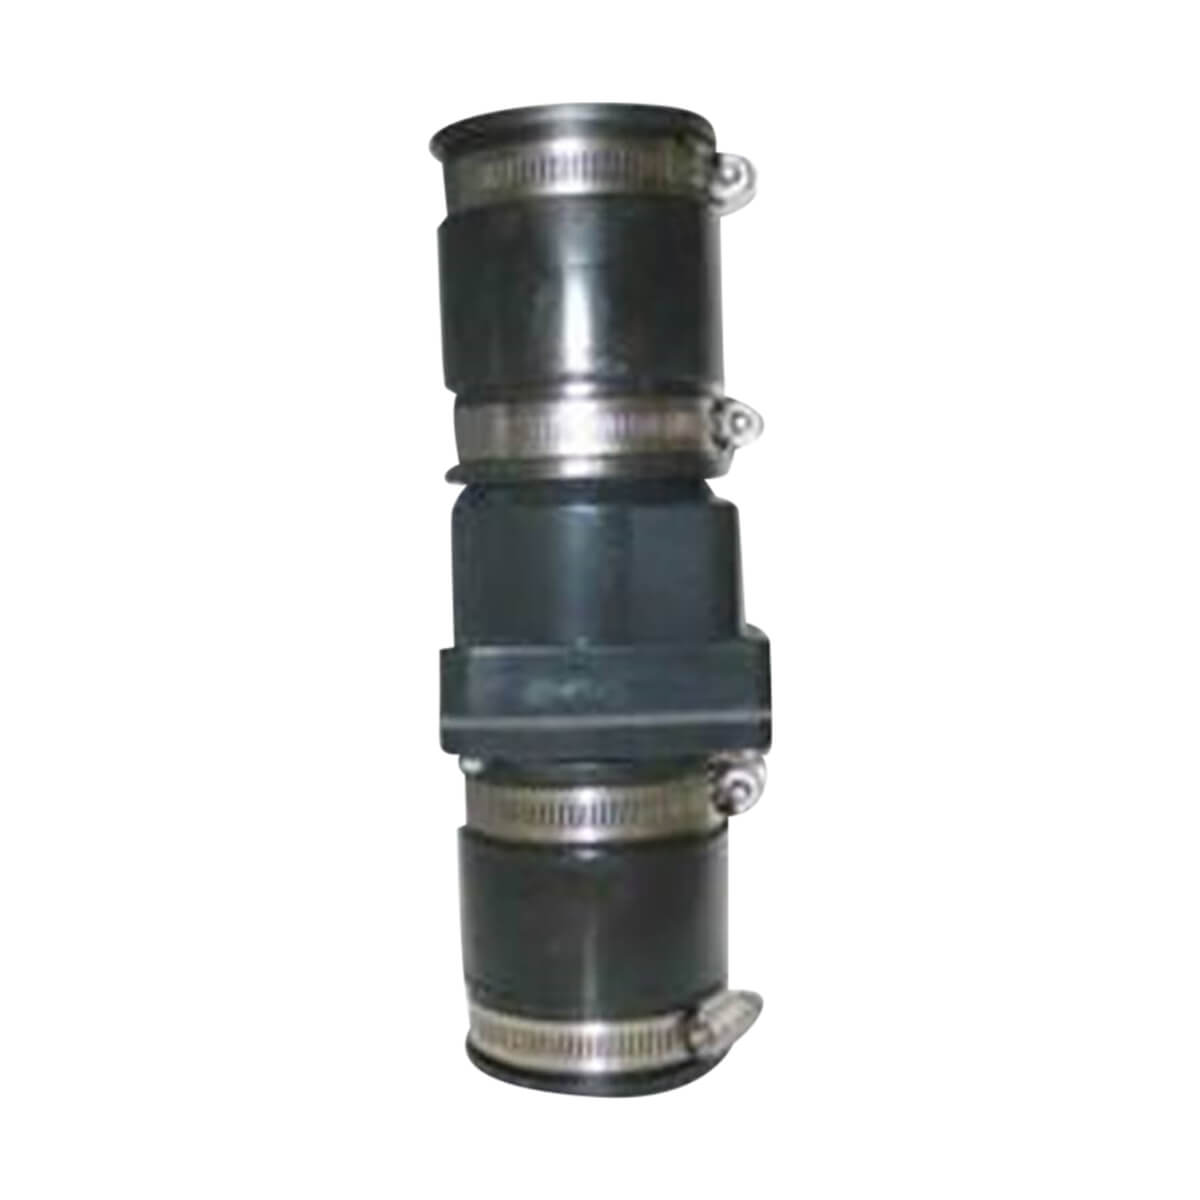 Clamping Check Valve - 2-in